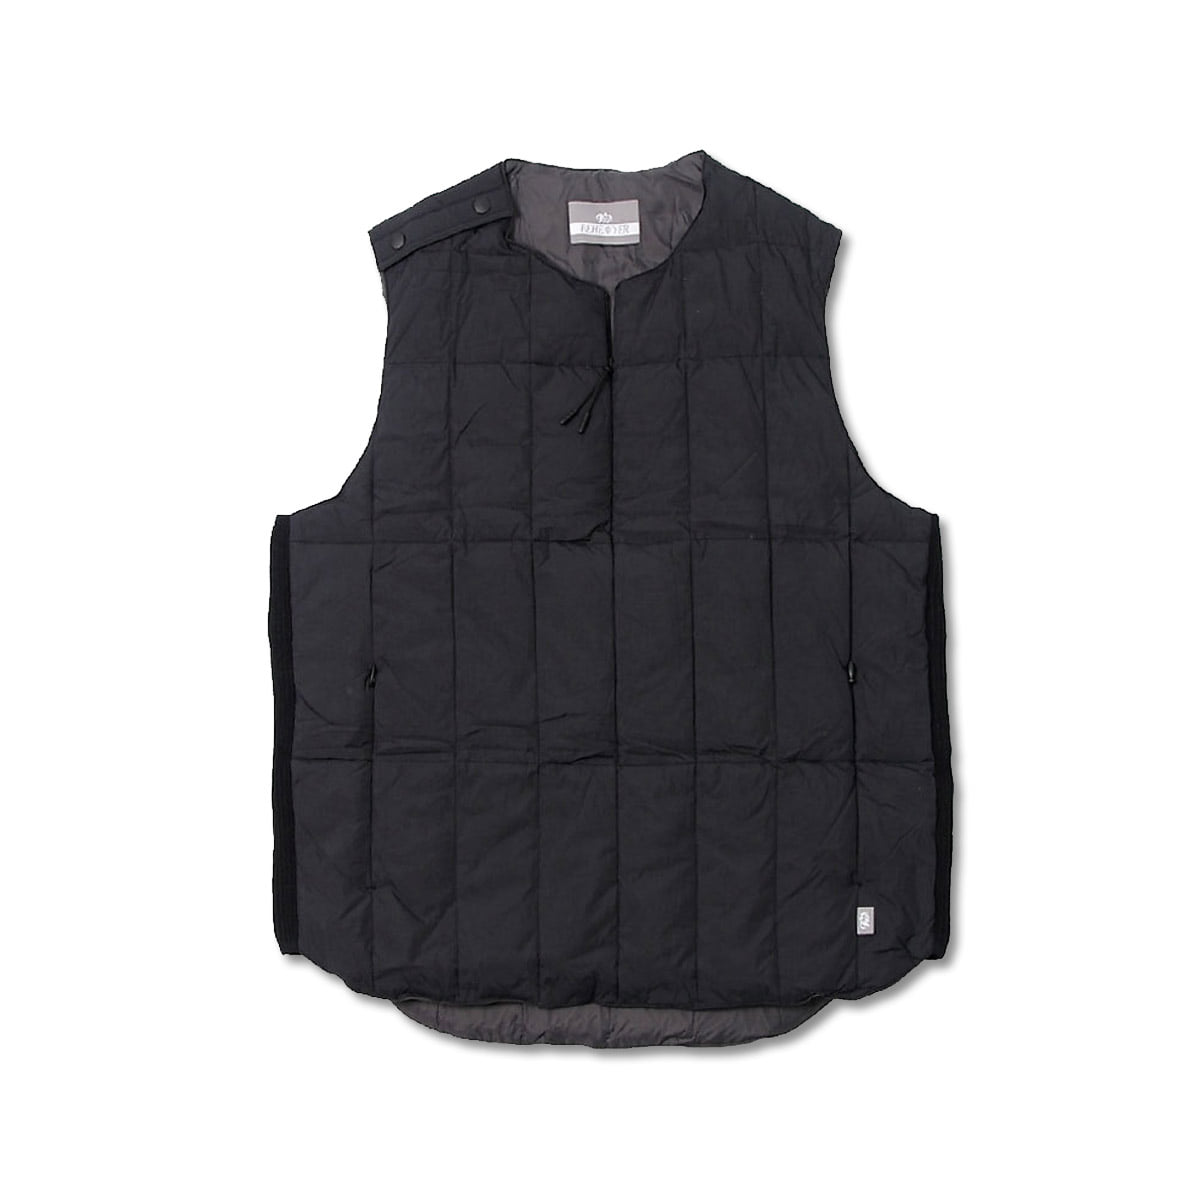 [BEHEAVYER] PACKING VEST 'BLACK'